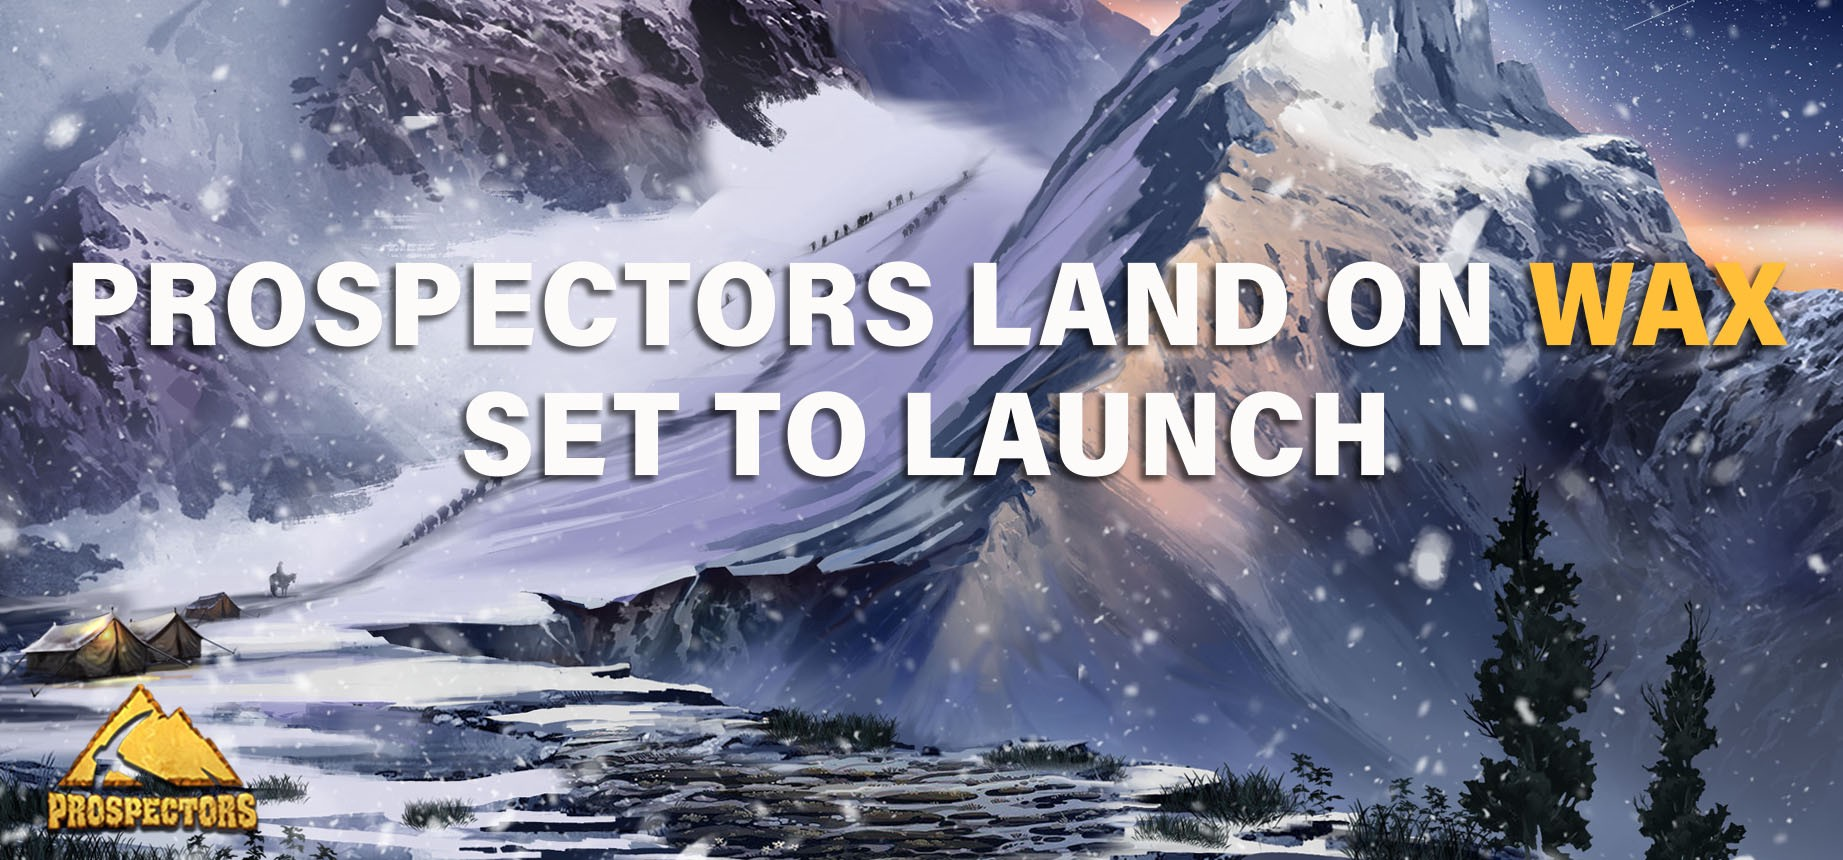 Prospectors Land on WAX set to Launch